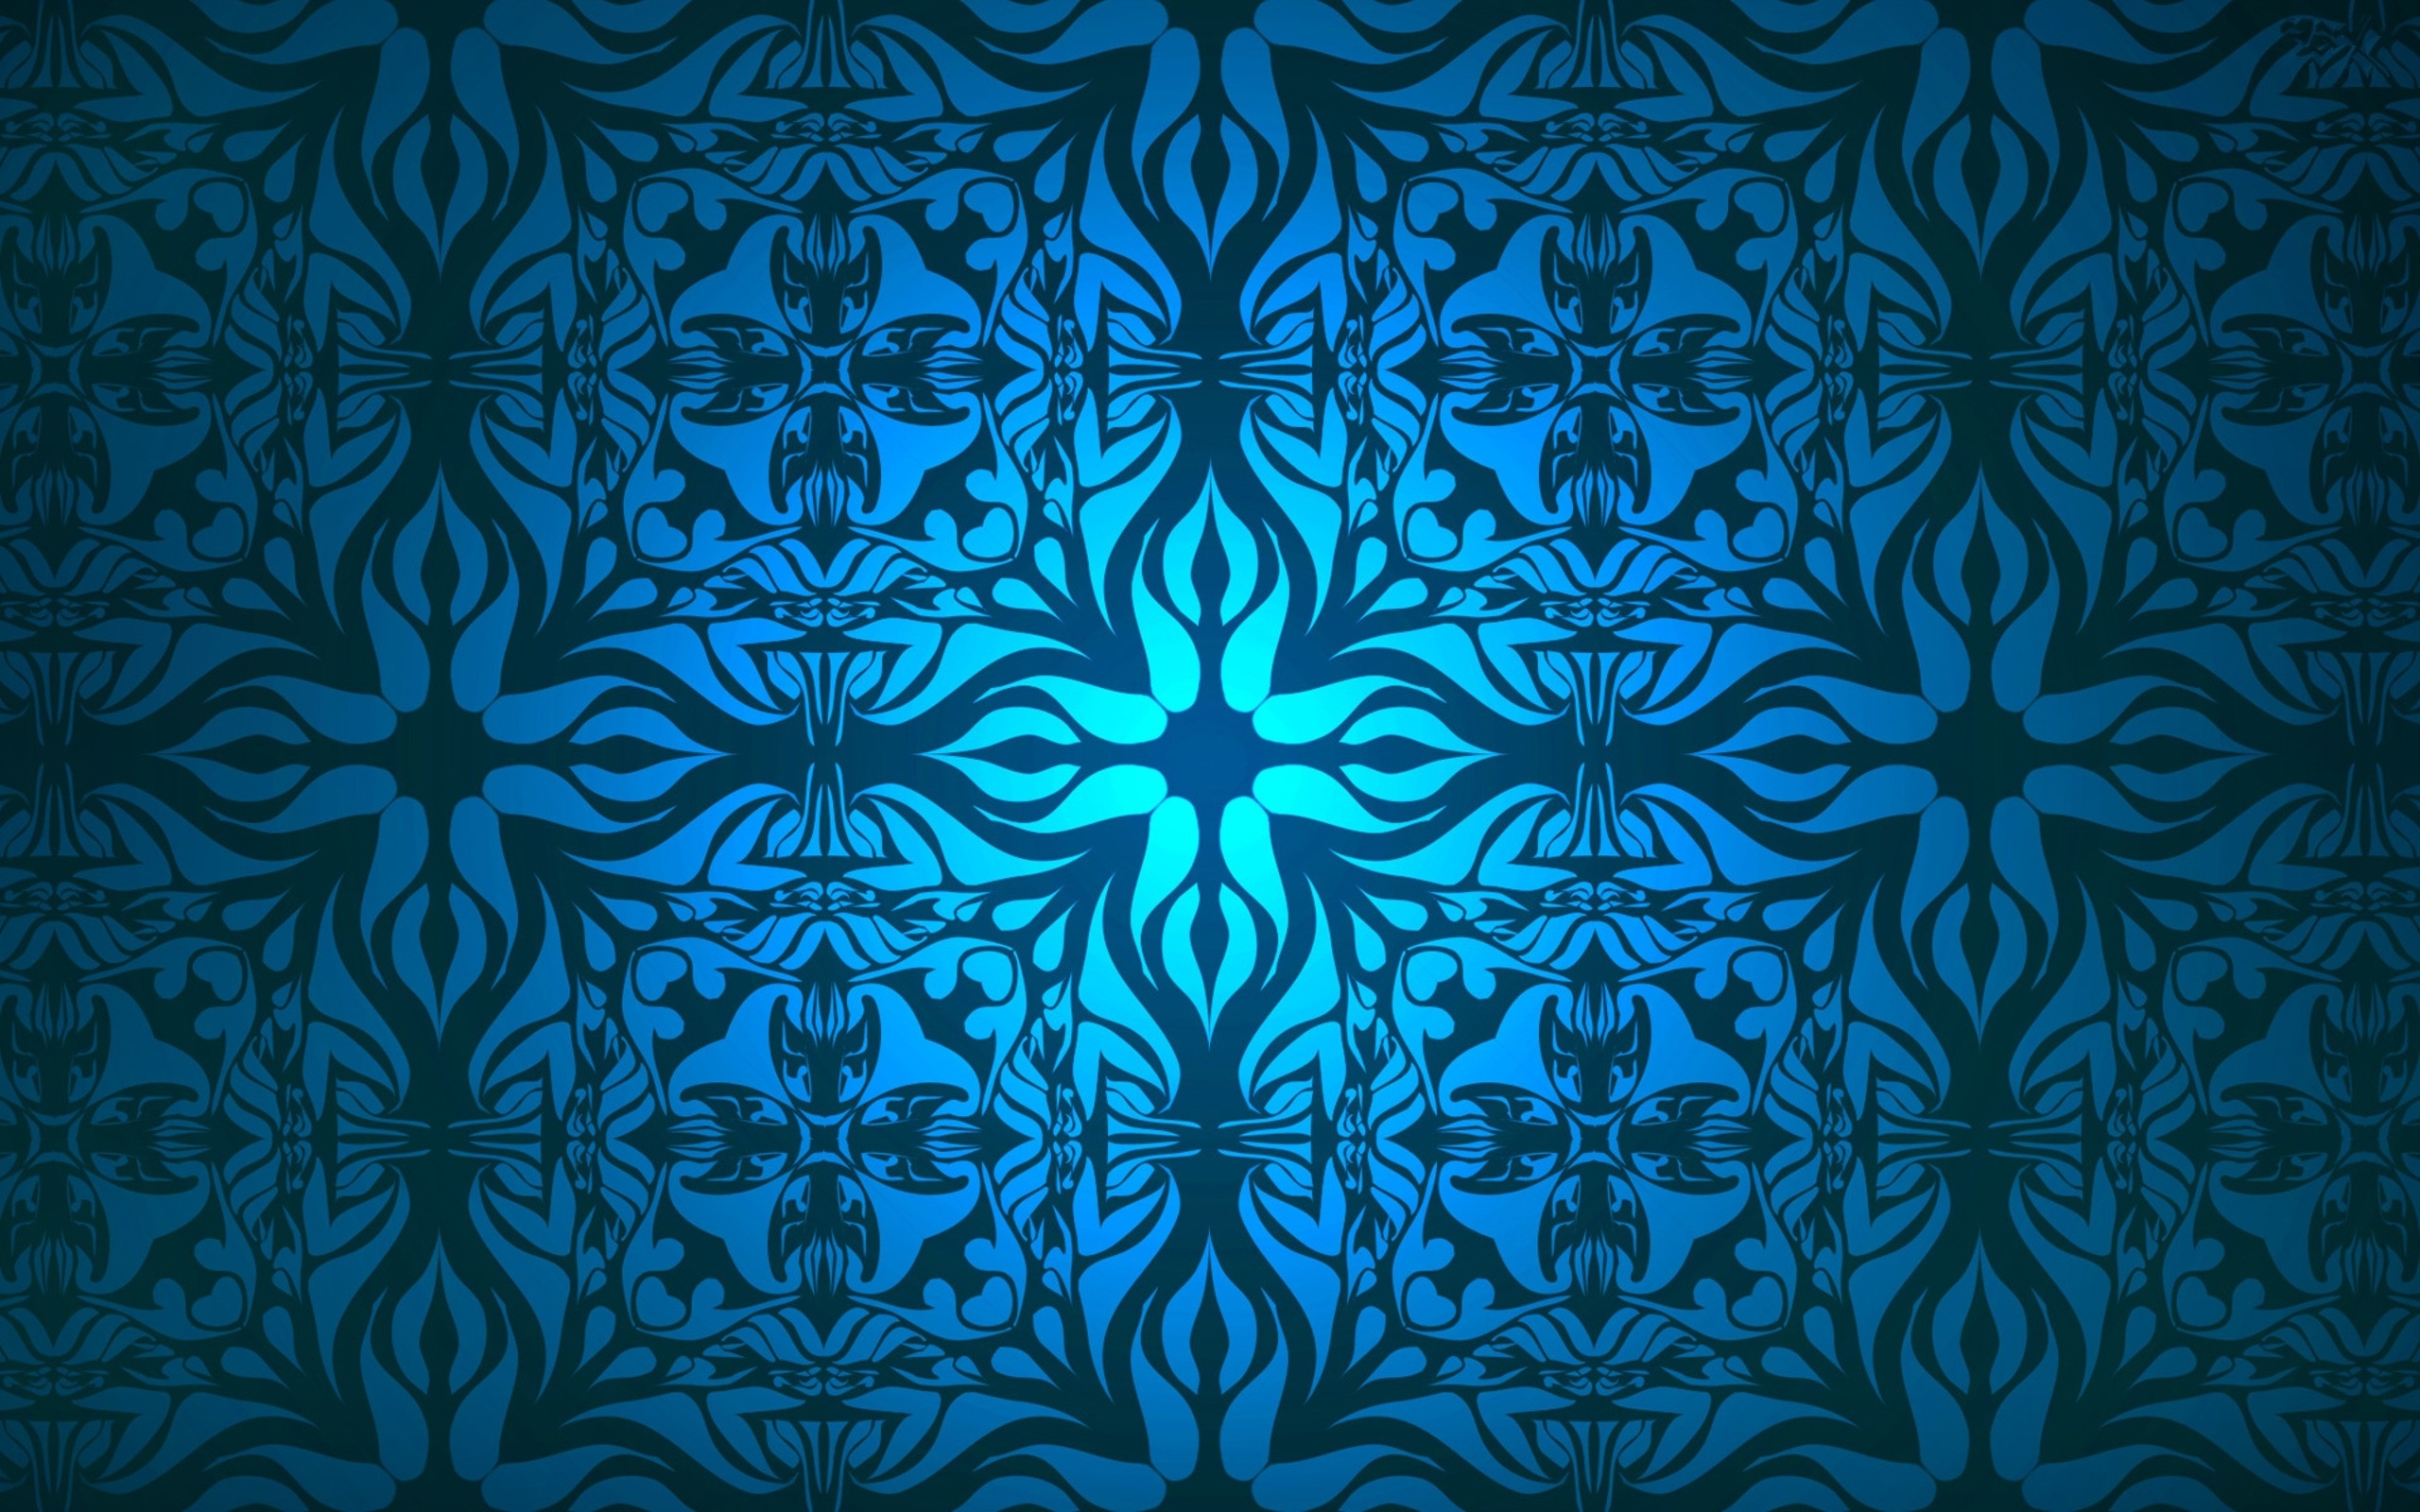 Background pattern wallpaper 2560x1600 75334 for Wallpaper pattern